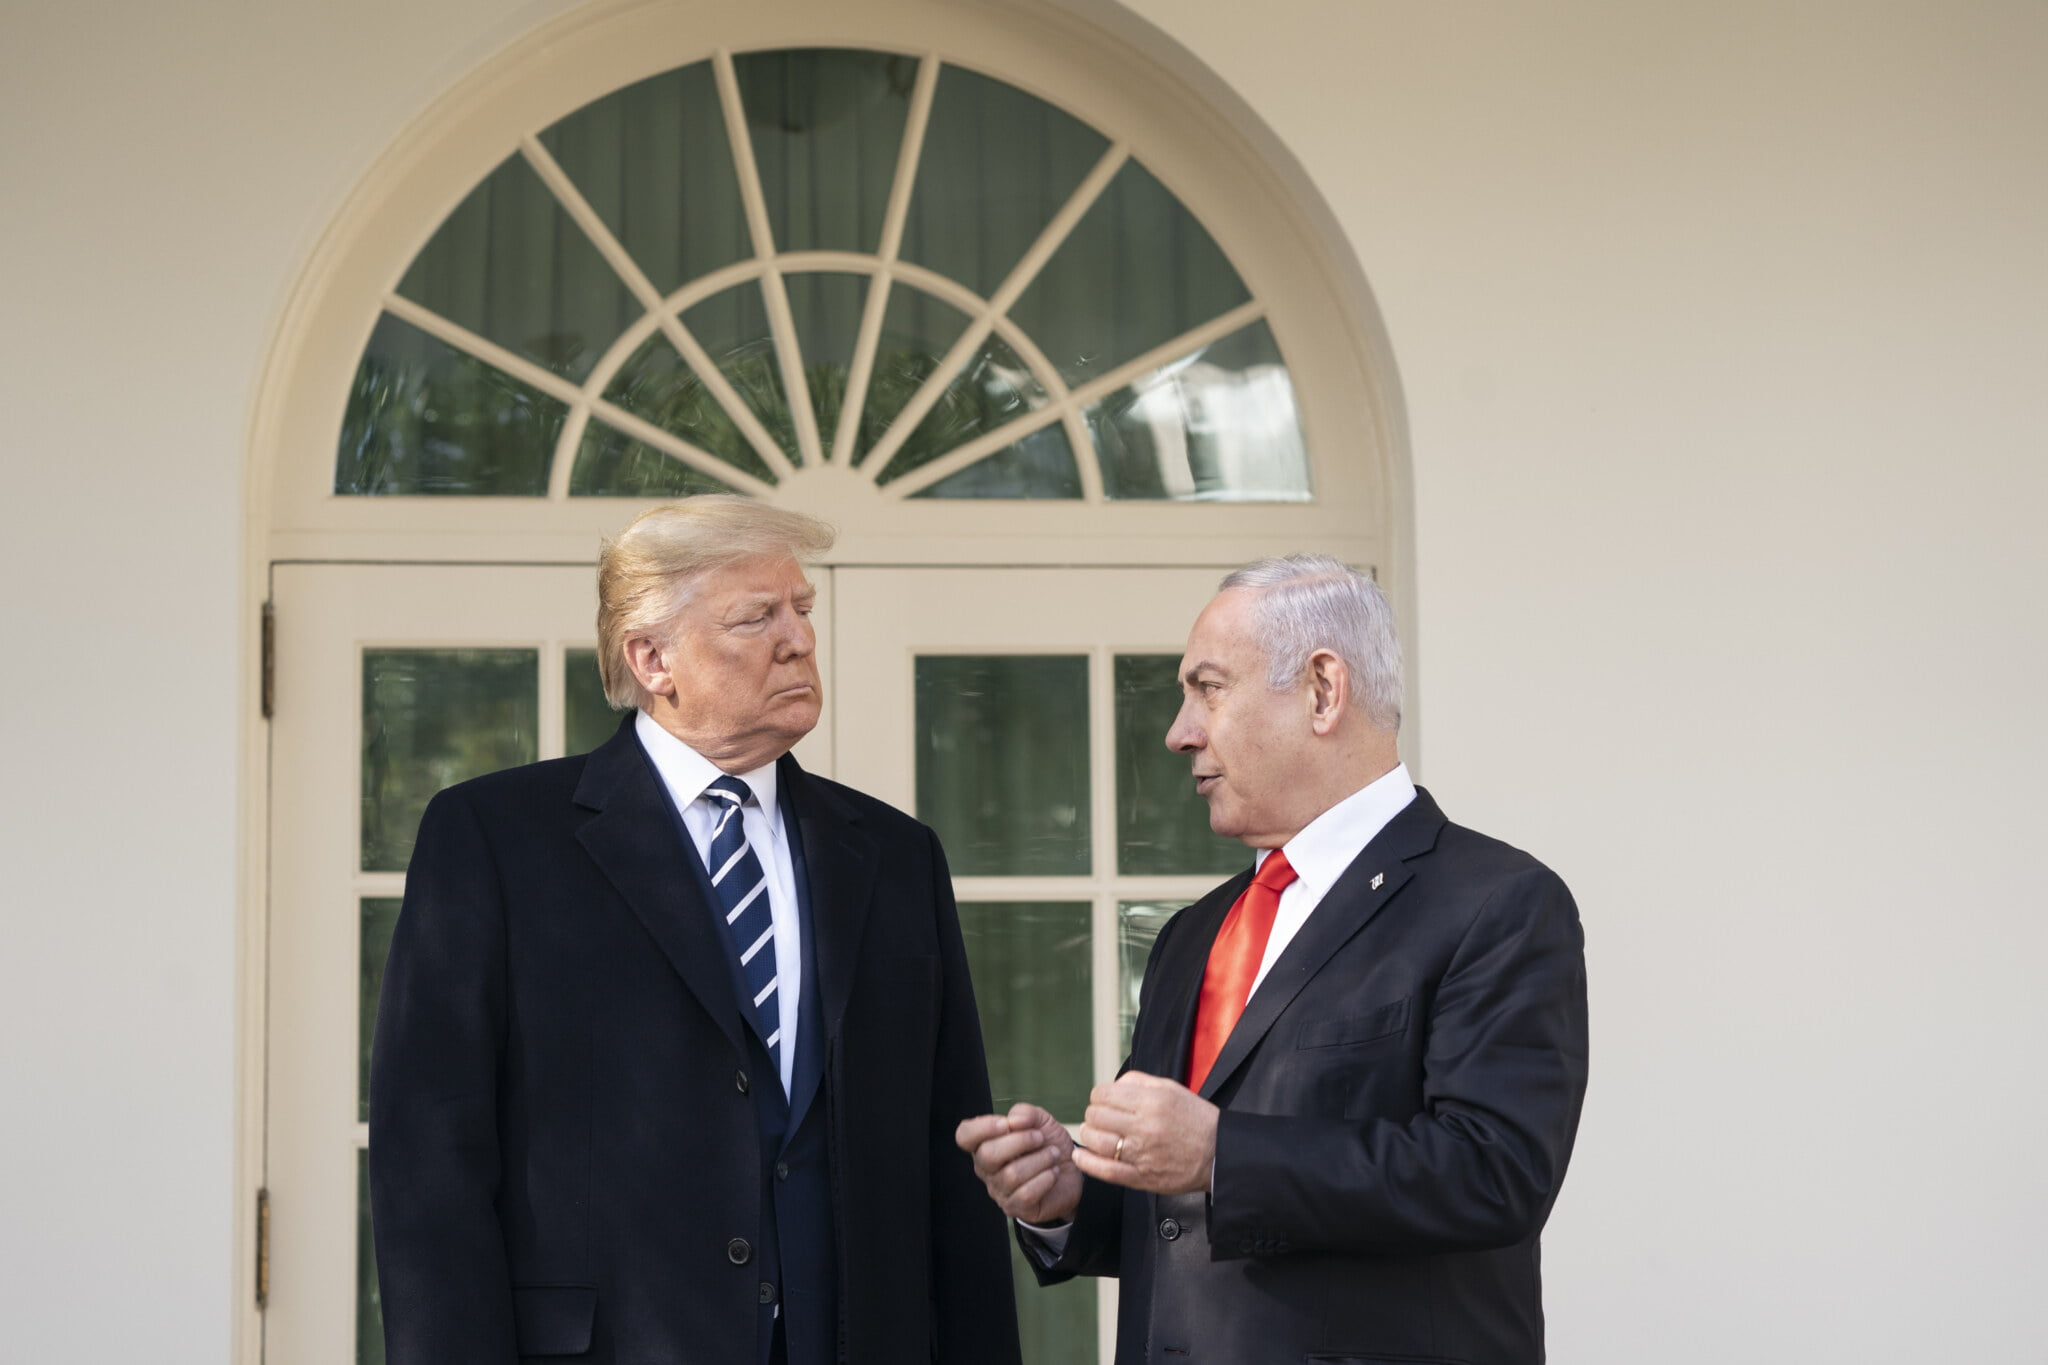 Trump Balances Budget by Making Netanyahu Do His Own Laundry